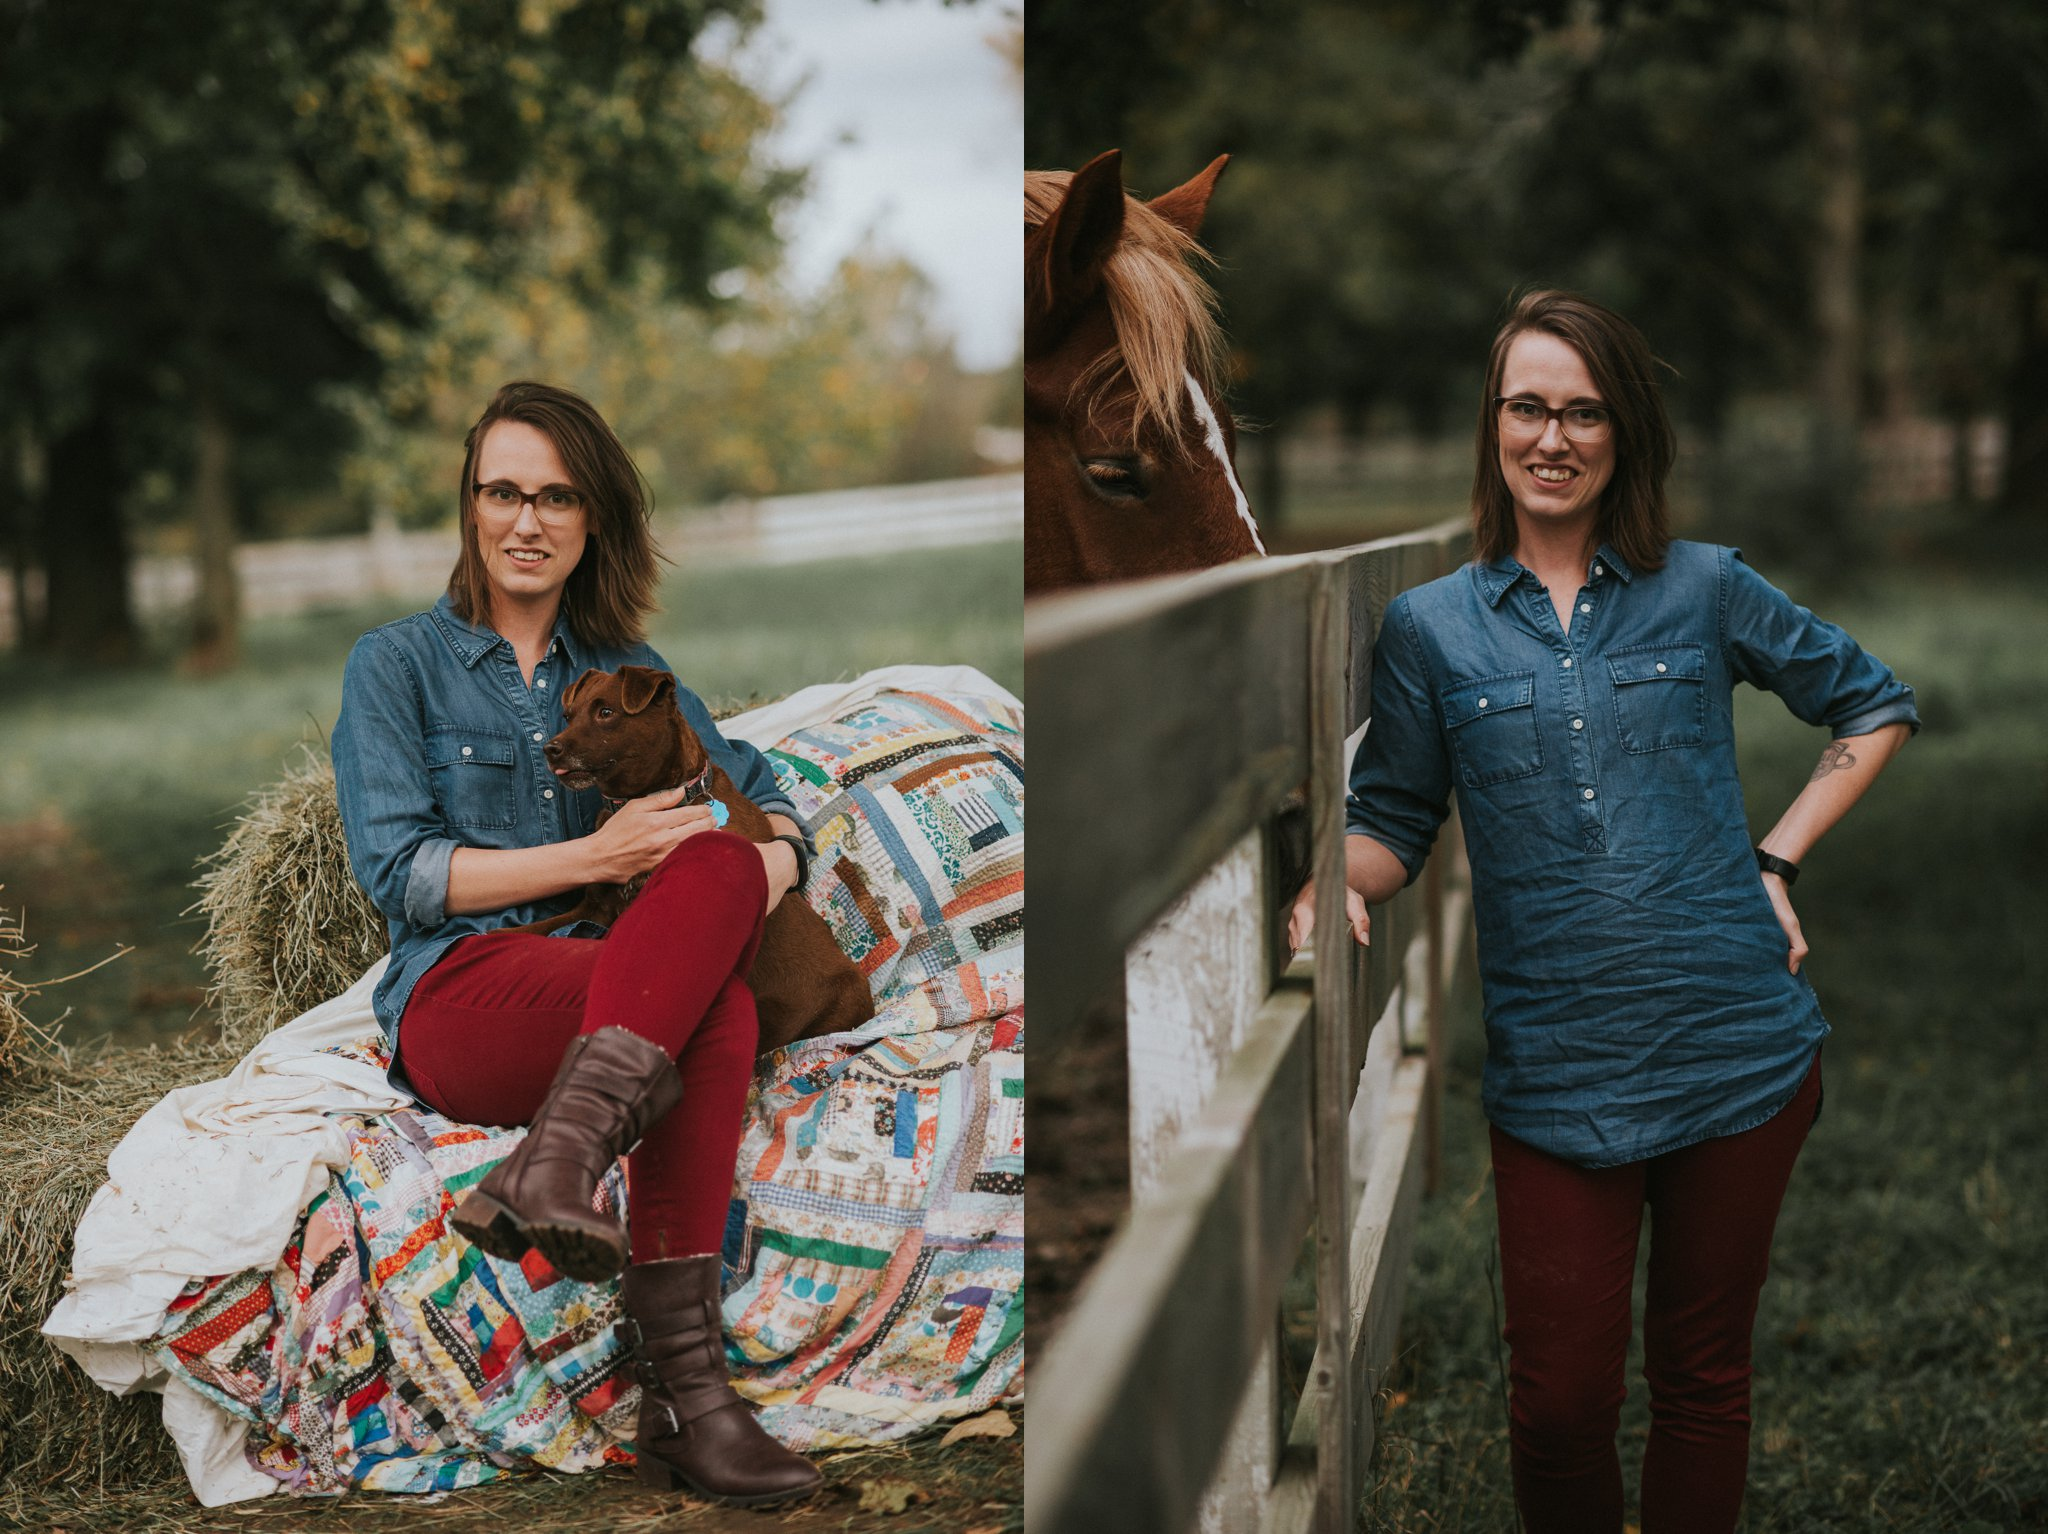 Farm Mini Session